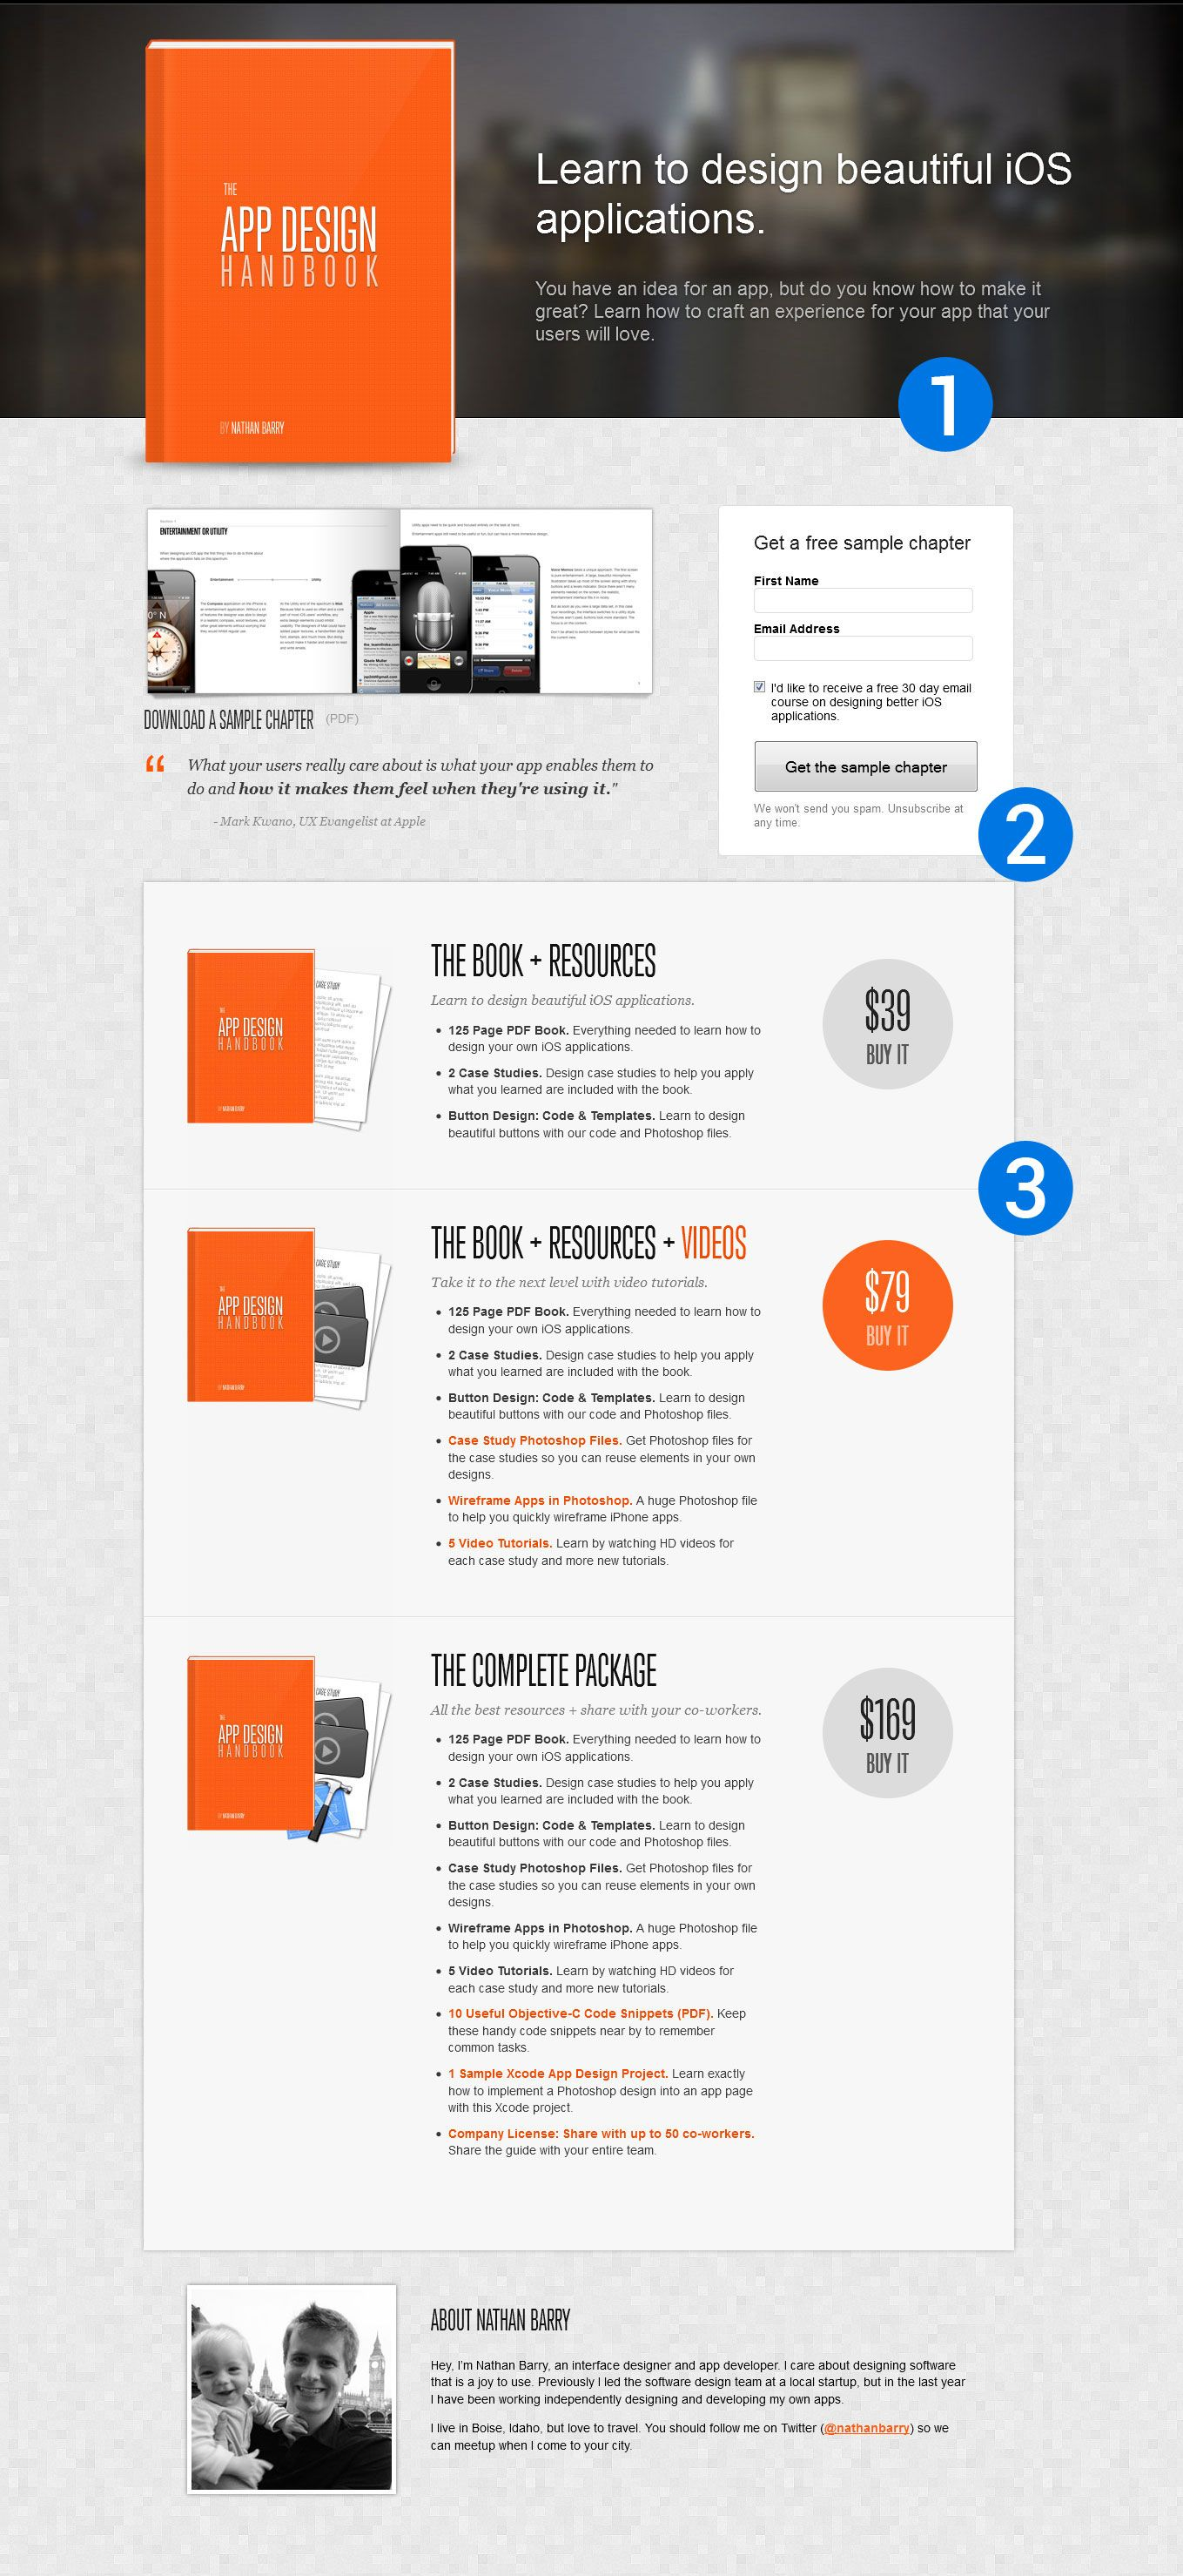 17 Landing Page Design Examples Get A Good Old Fashioned Roasting